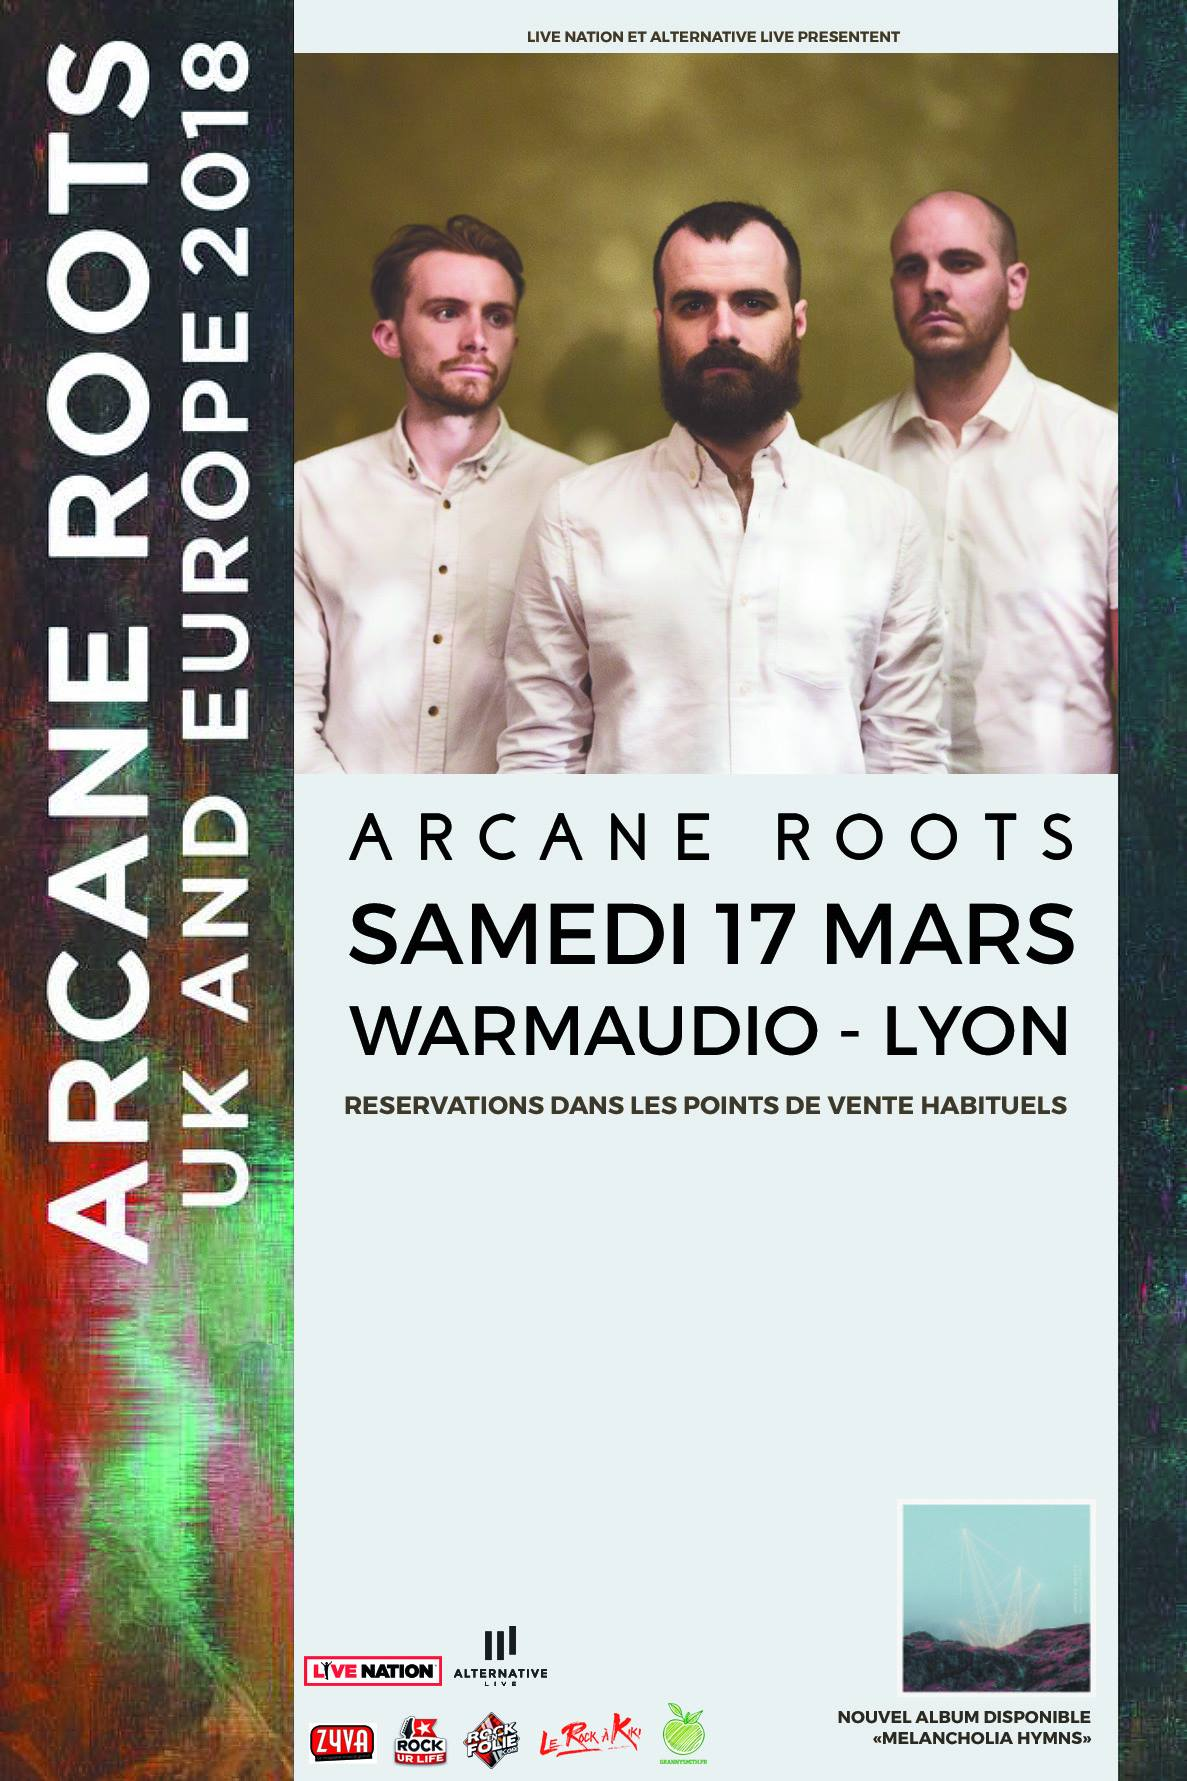 arcane roots grumble bee lyon alternative live